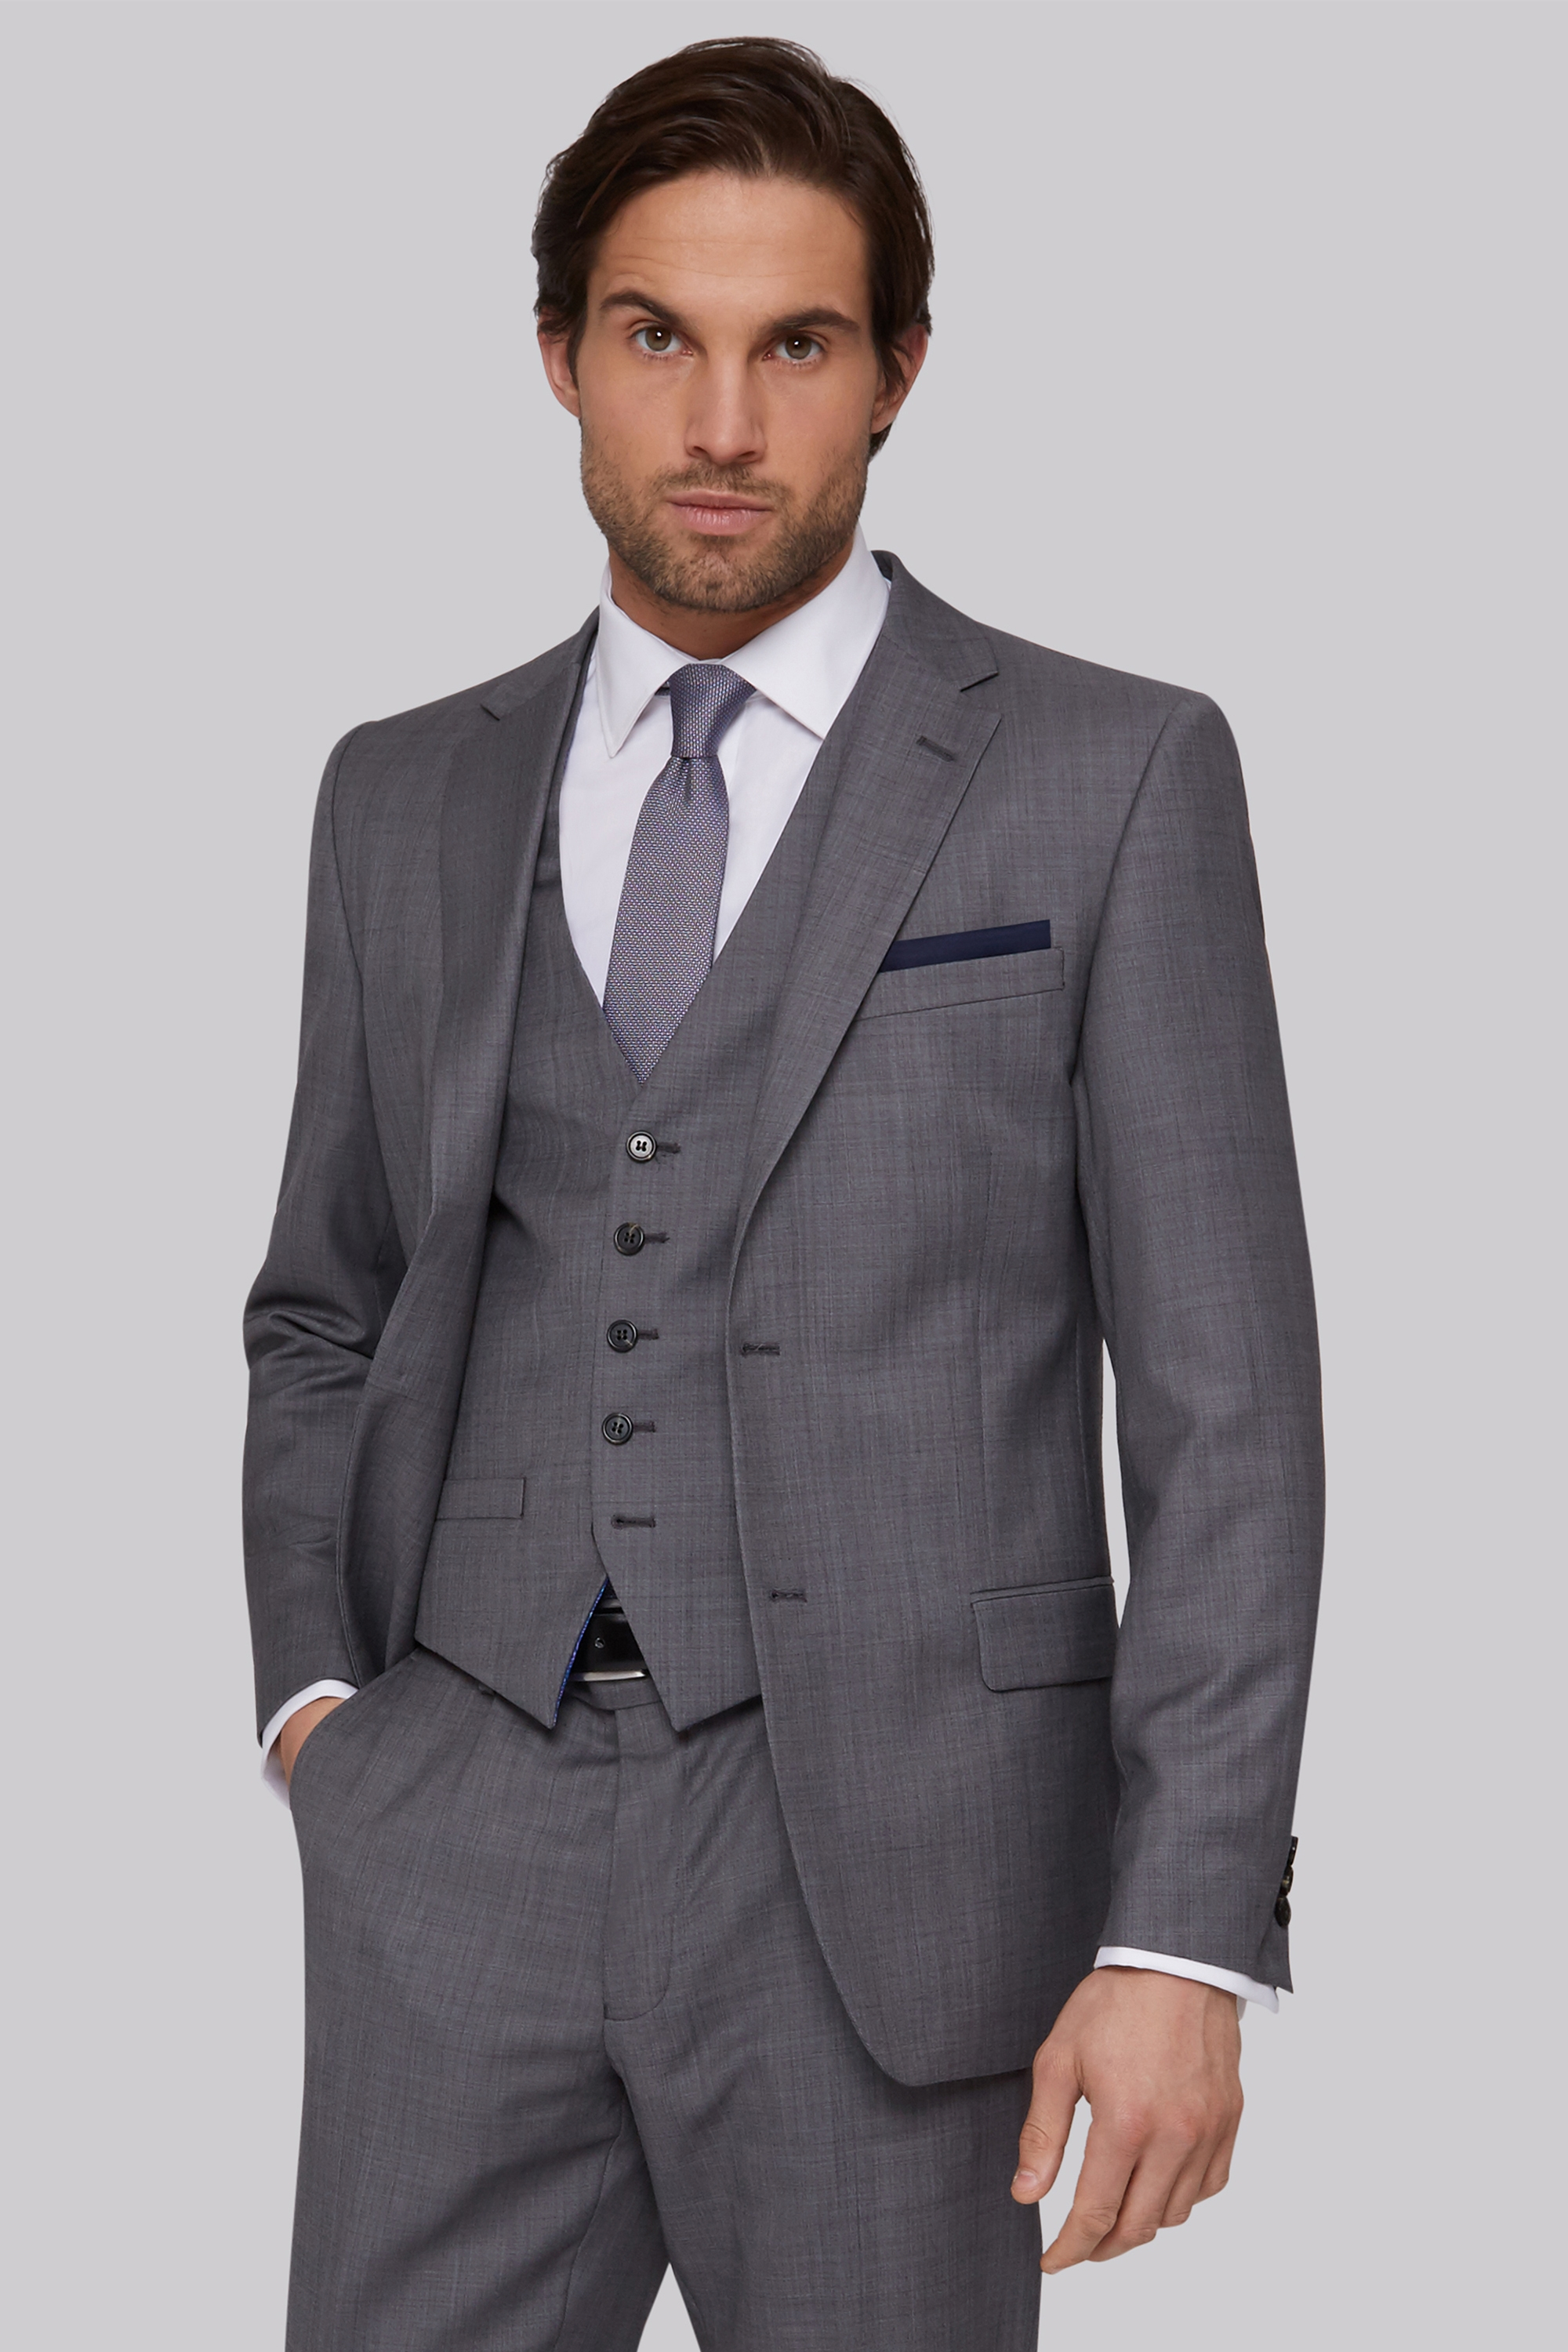 silver suit suit, allshop-eqe0tr01.cf is an online store offering some of the best Mens Suits, Tuxedos, Discount Zoot Suits and lot more.